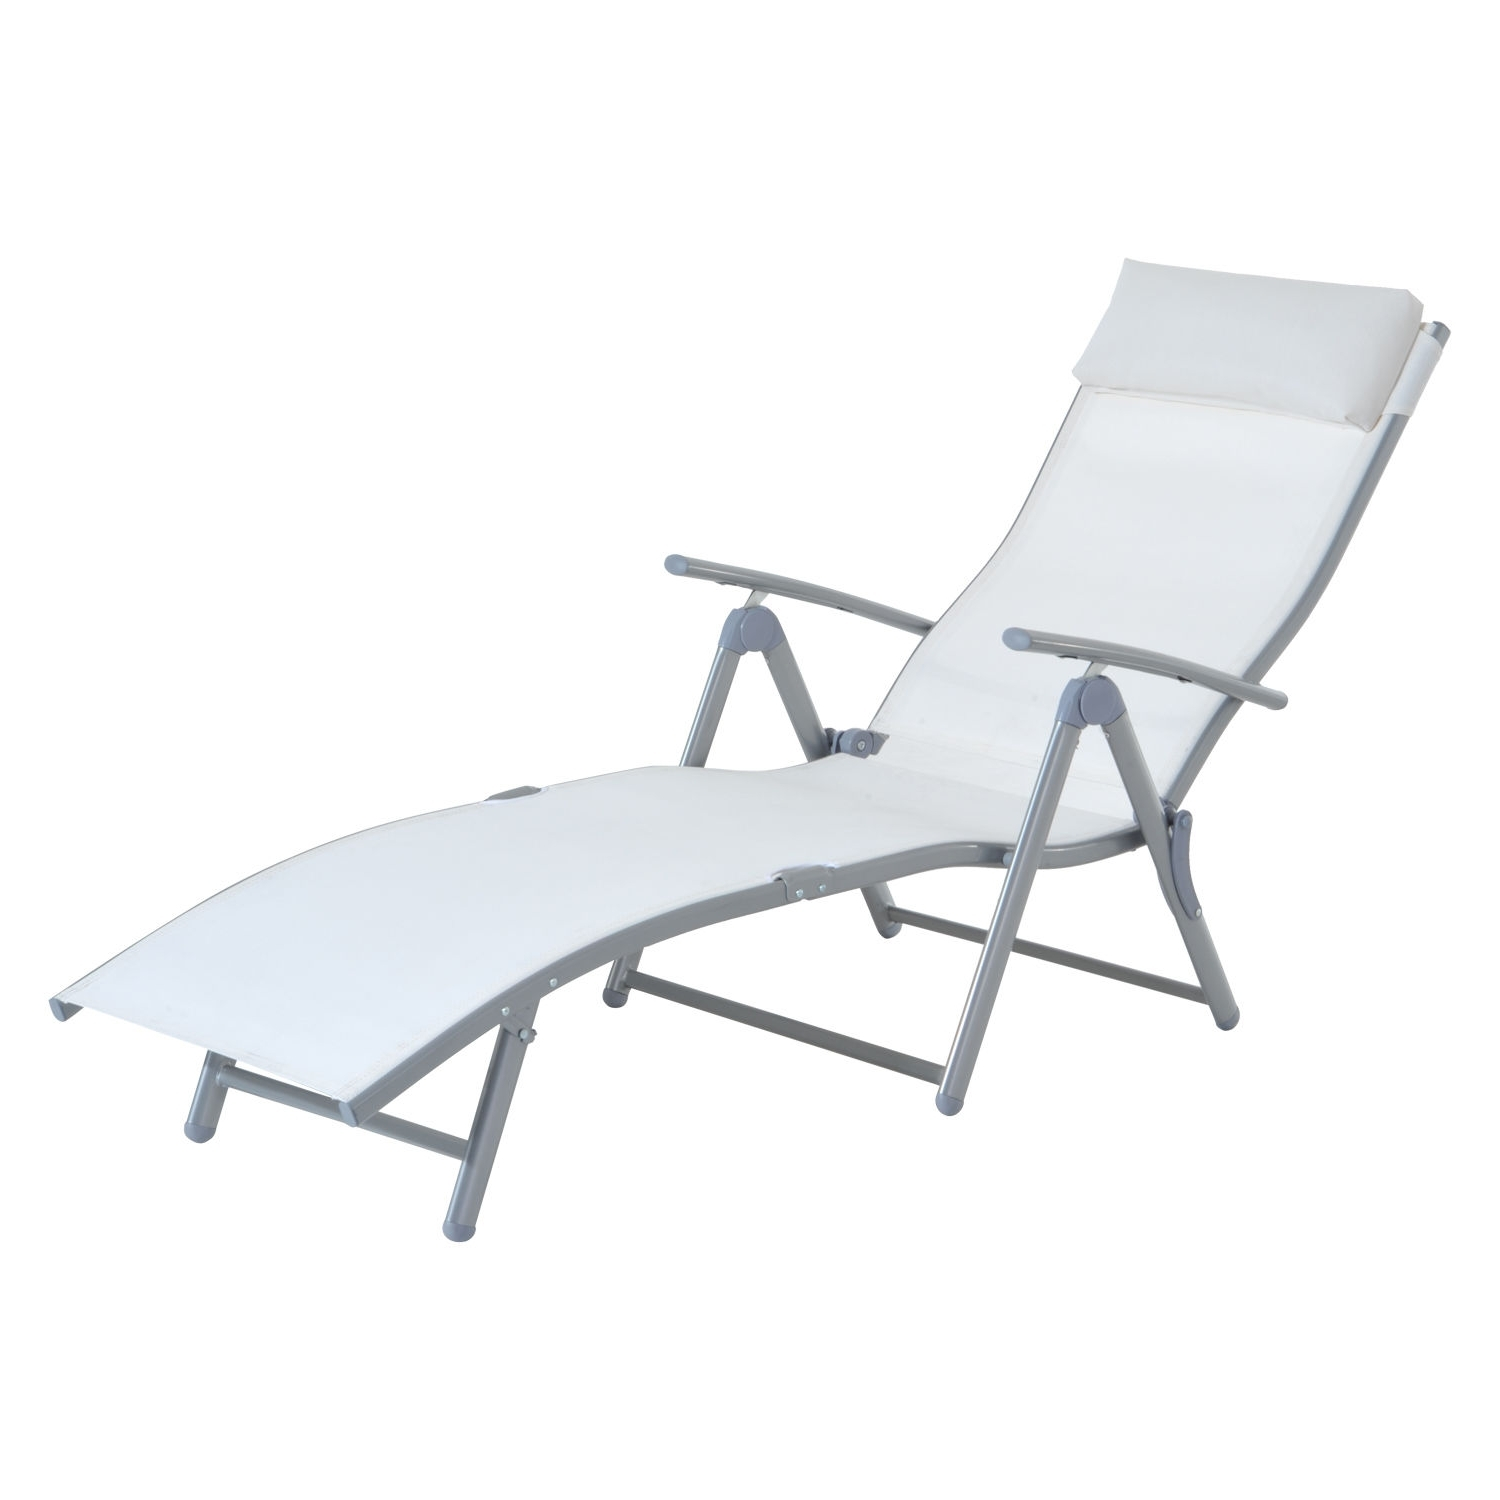 Outdoor : Lowes Chaise Lounge Indoor Outdoor Chaise Lounge Chairs With Regard To Newest Vinyl Strap Chaise Lounge Chairs (View 6 of 15)